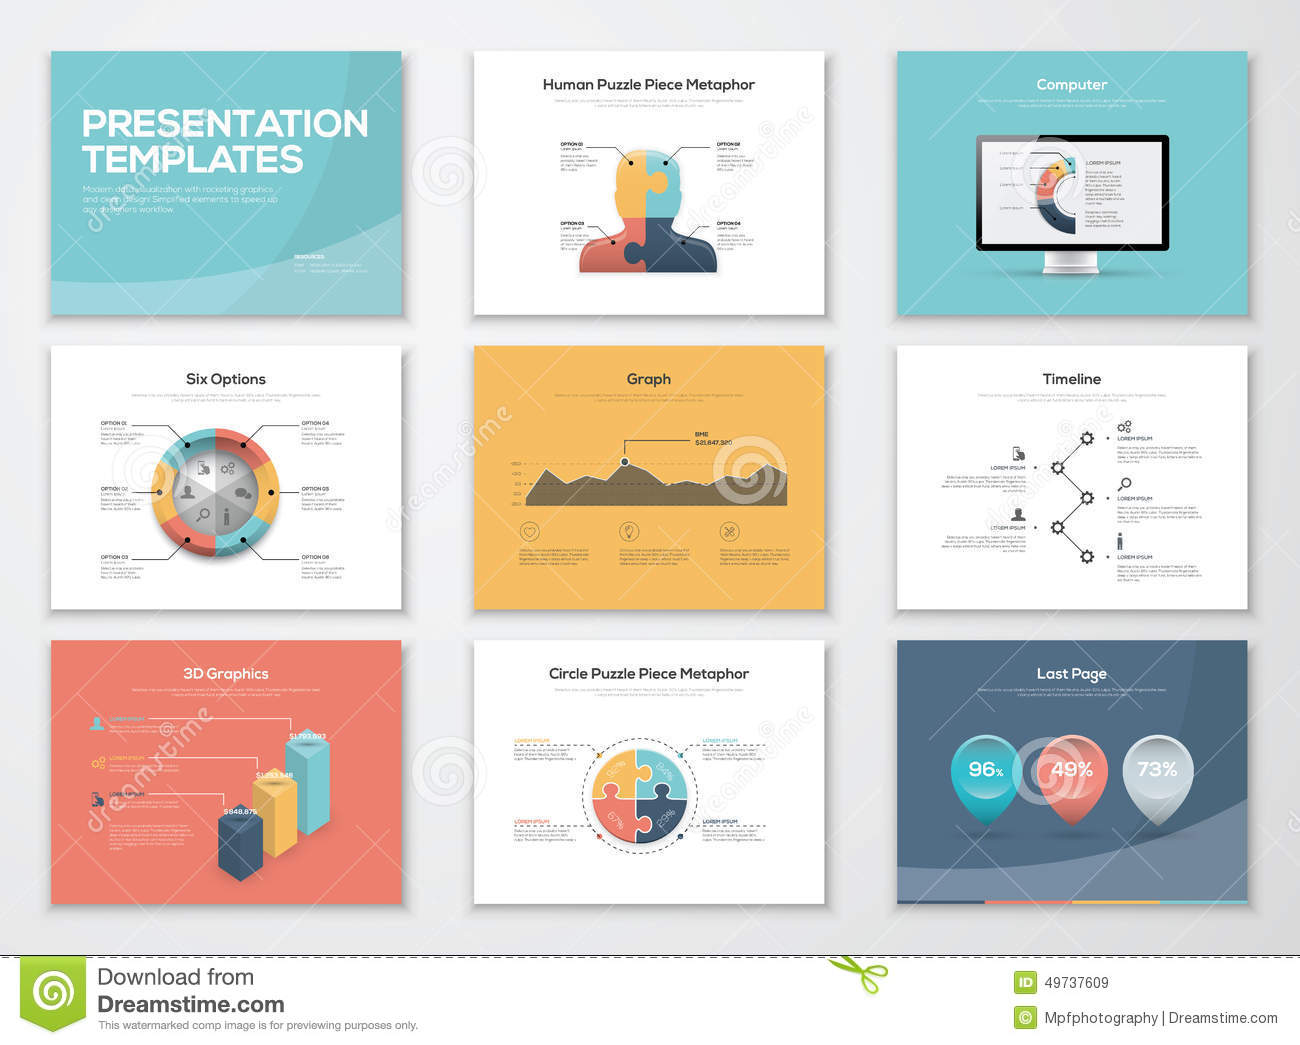 business presentation templates and infographics vector elements, Presentation templates